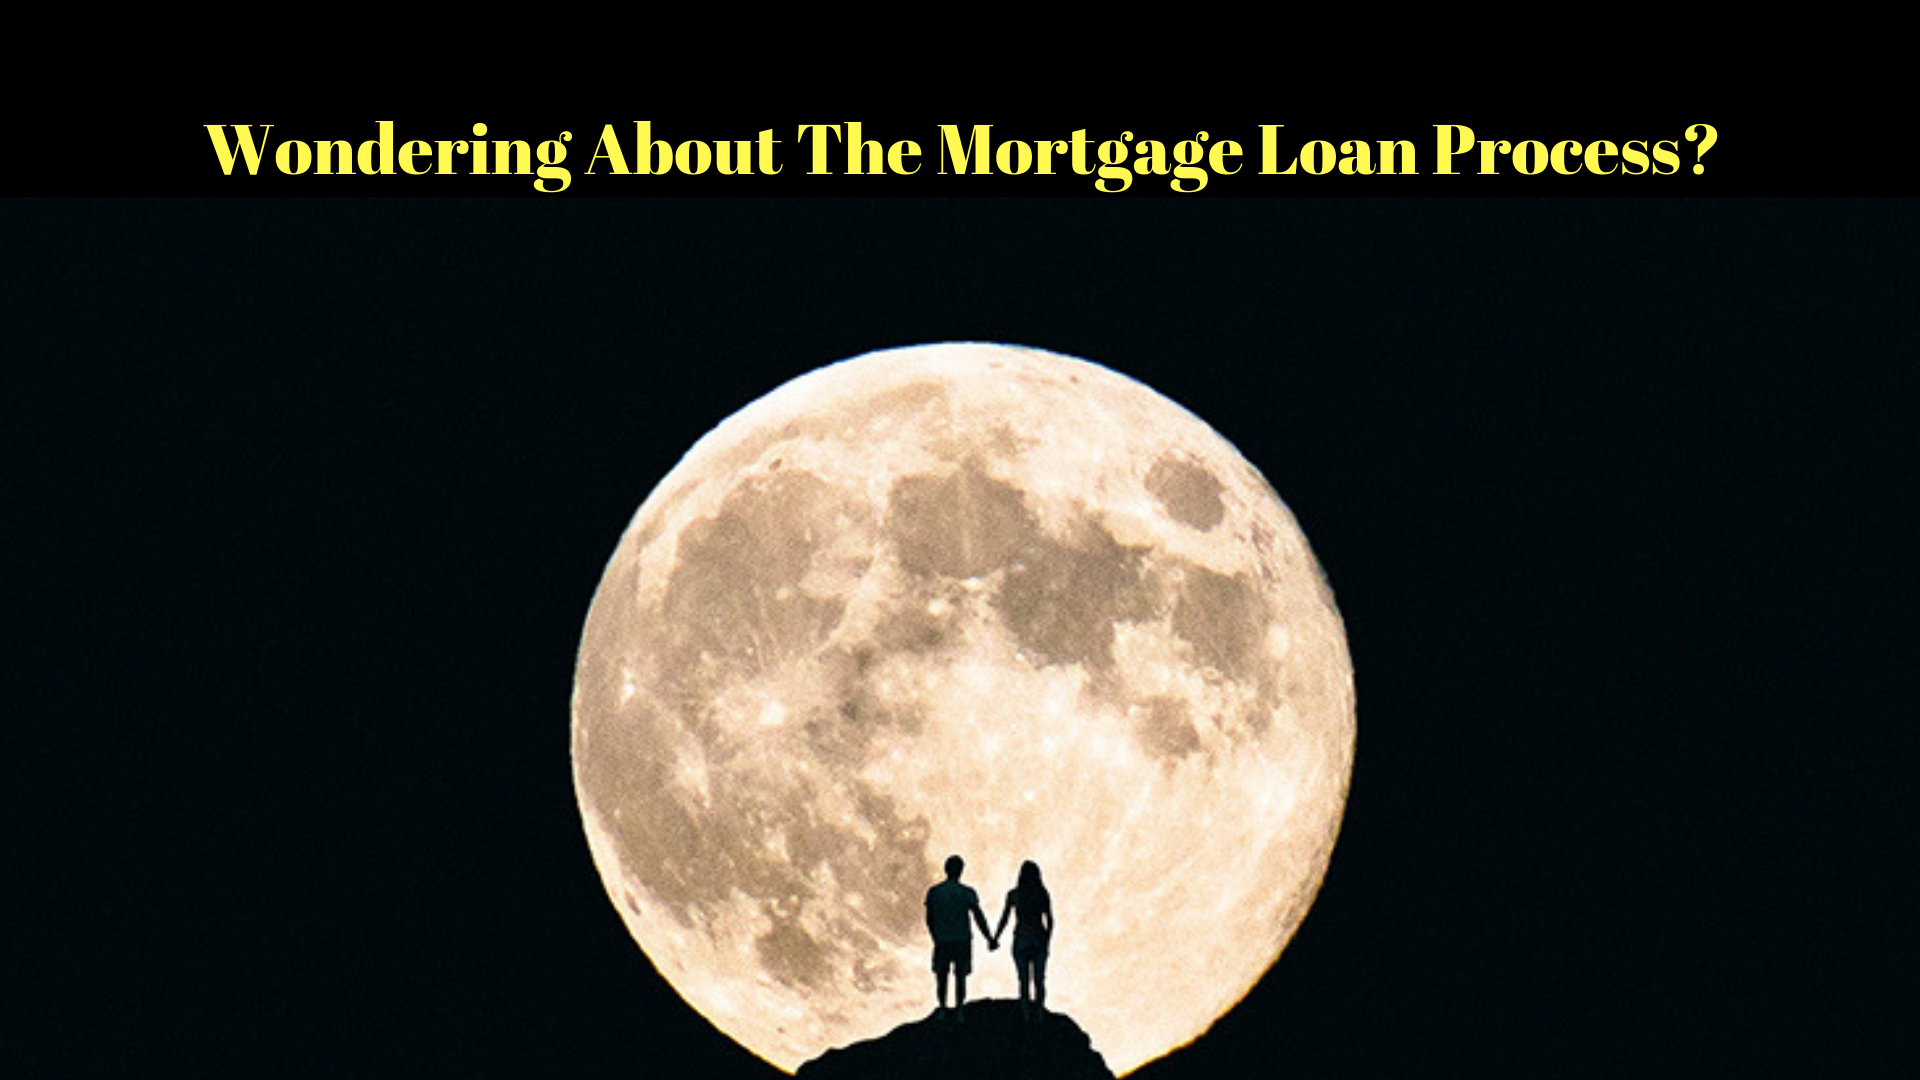 5 Things You Should Know About The Mortgage Loan Process